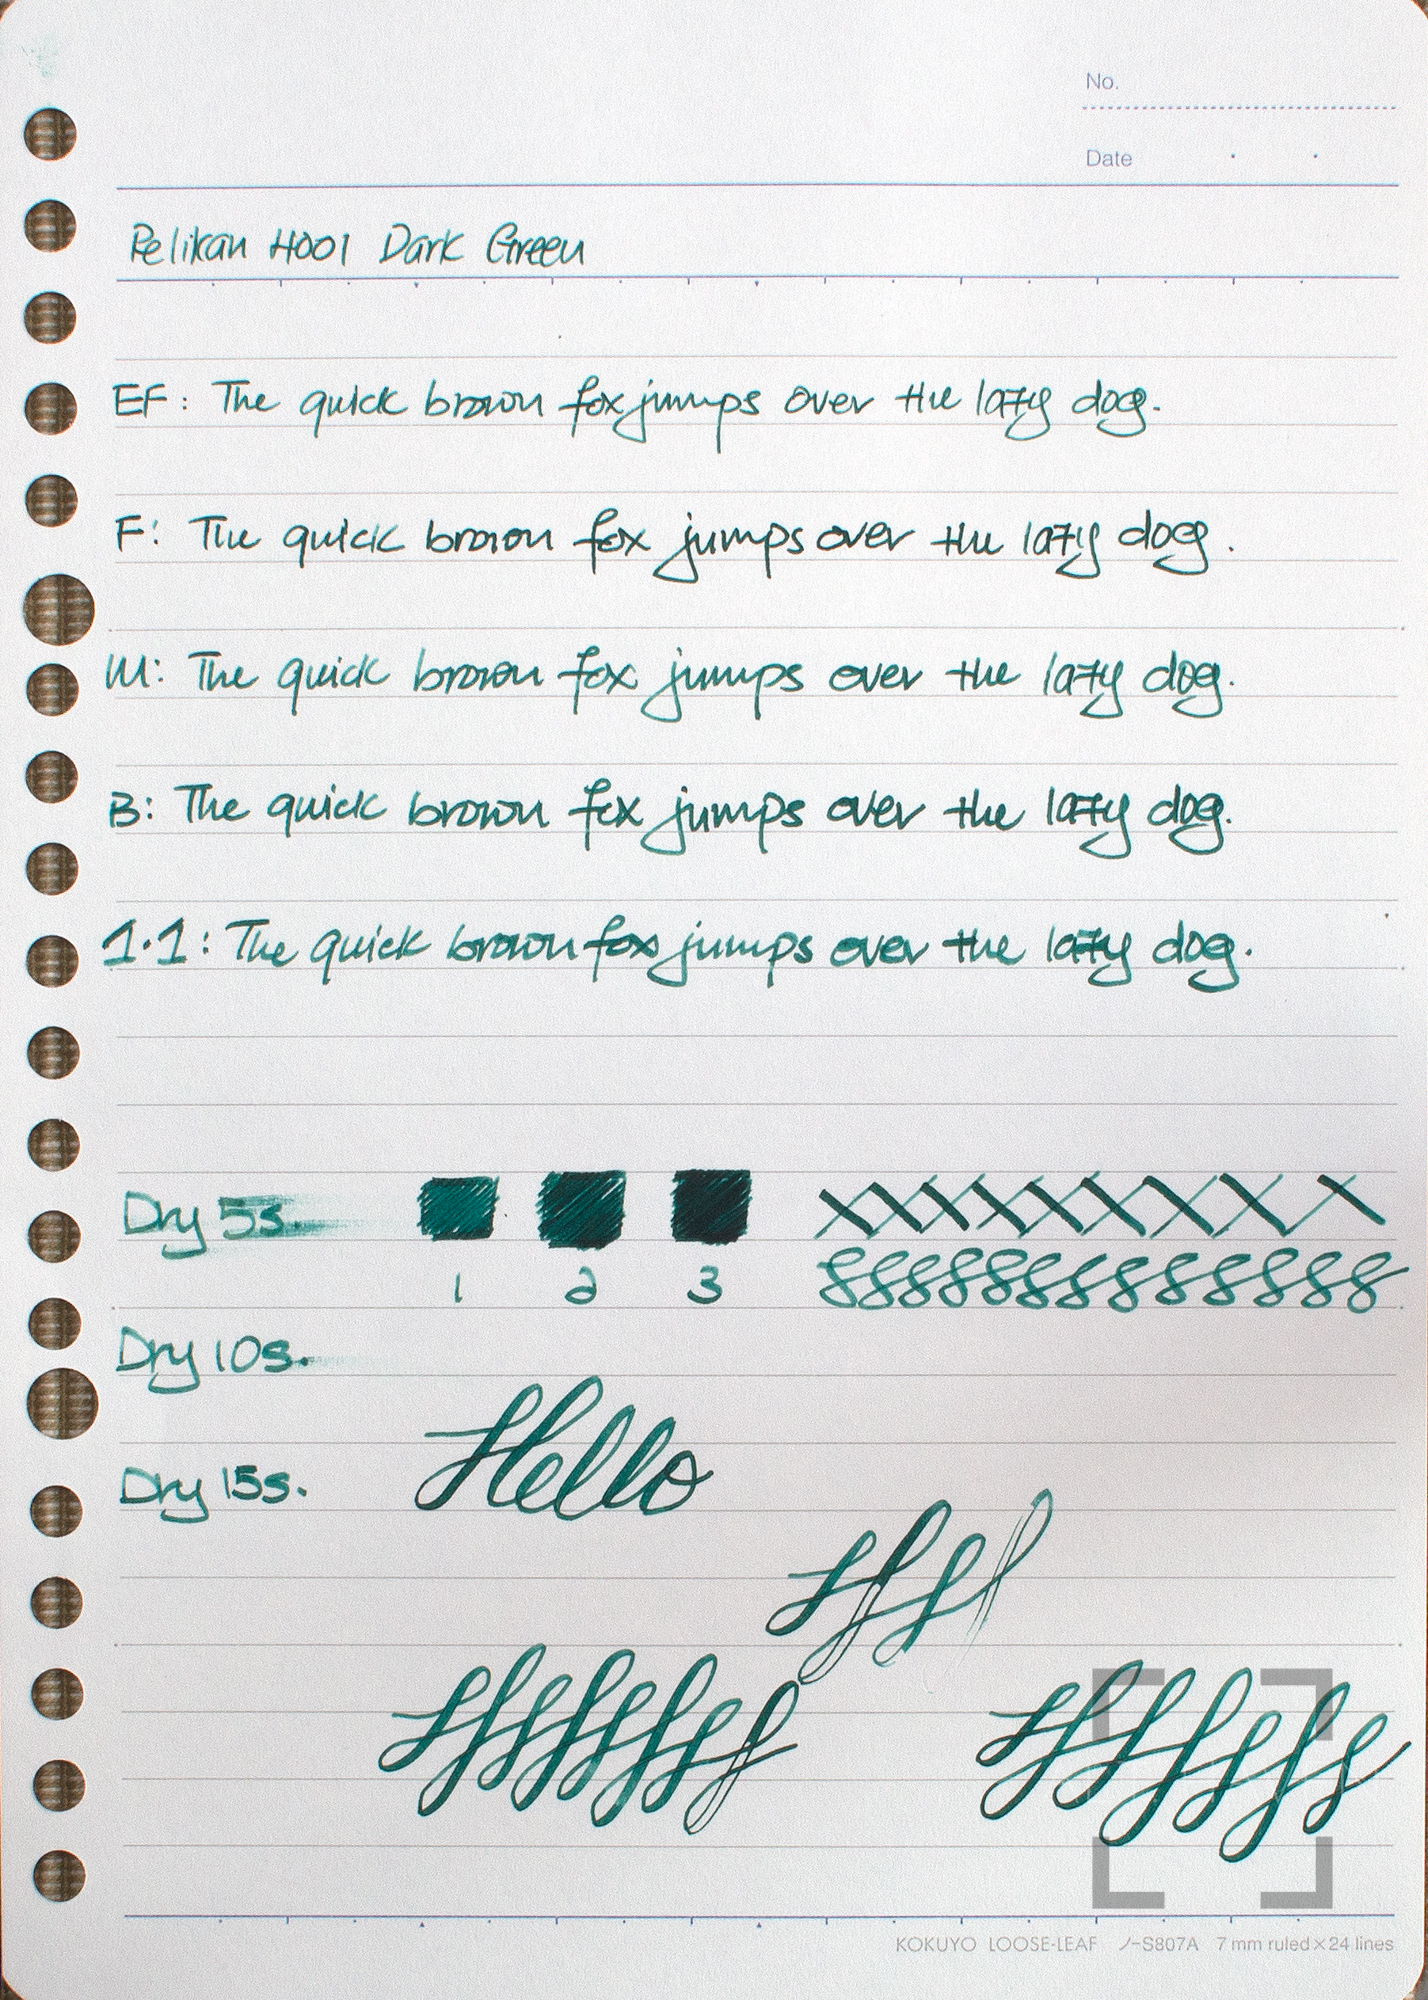 Pelikan 4001 Dark Green.jpg